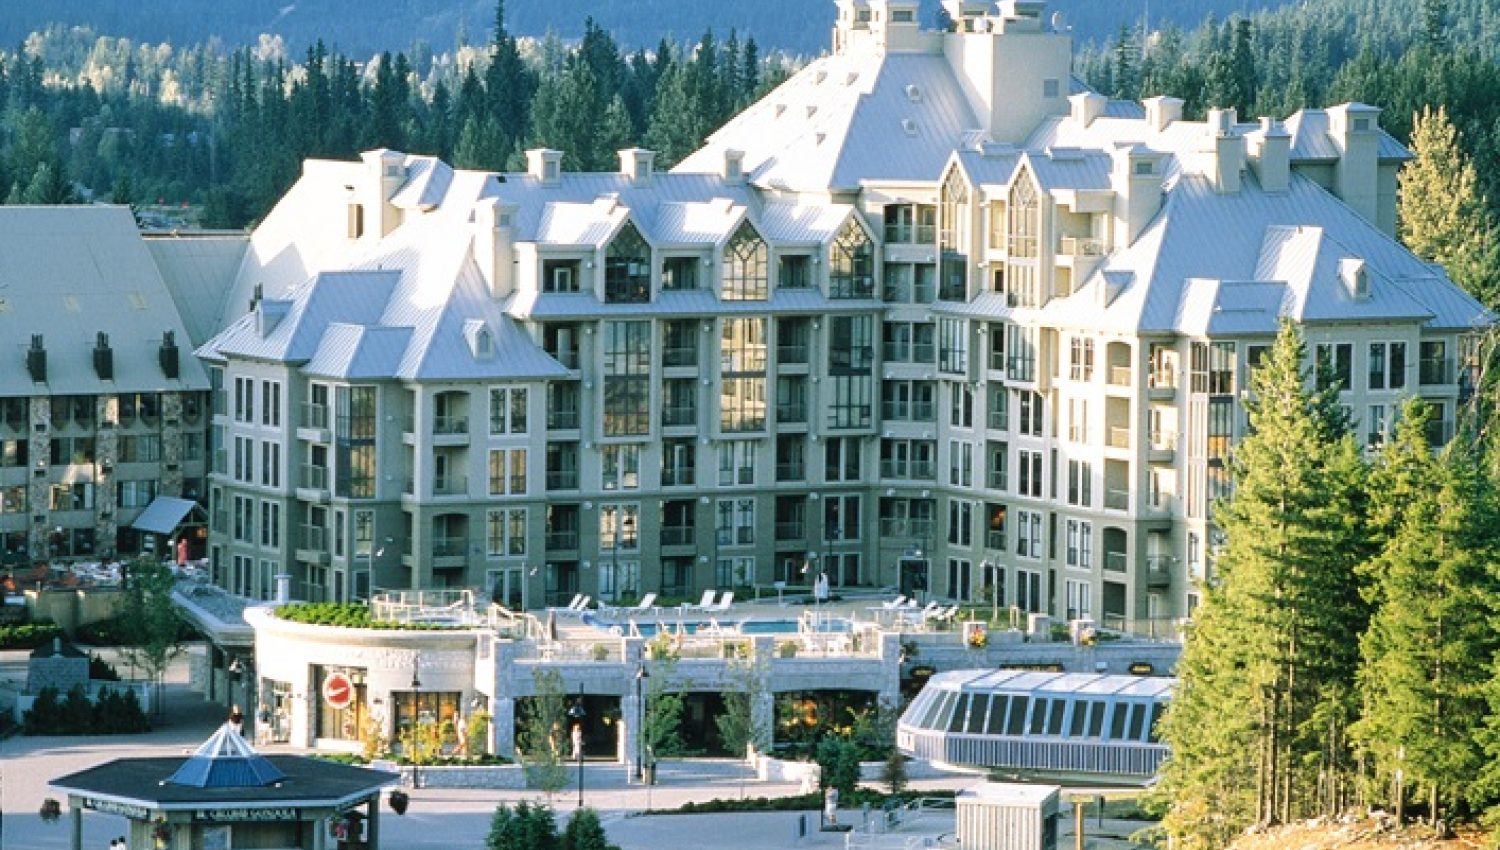 whistler-hotel-pan-pacific-mountainside-a-village-1